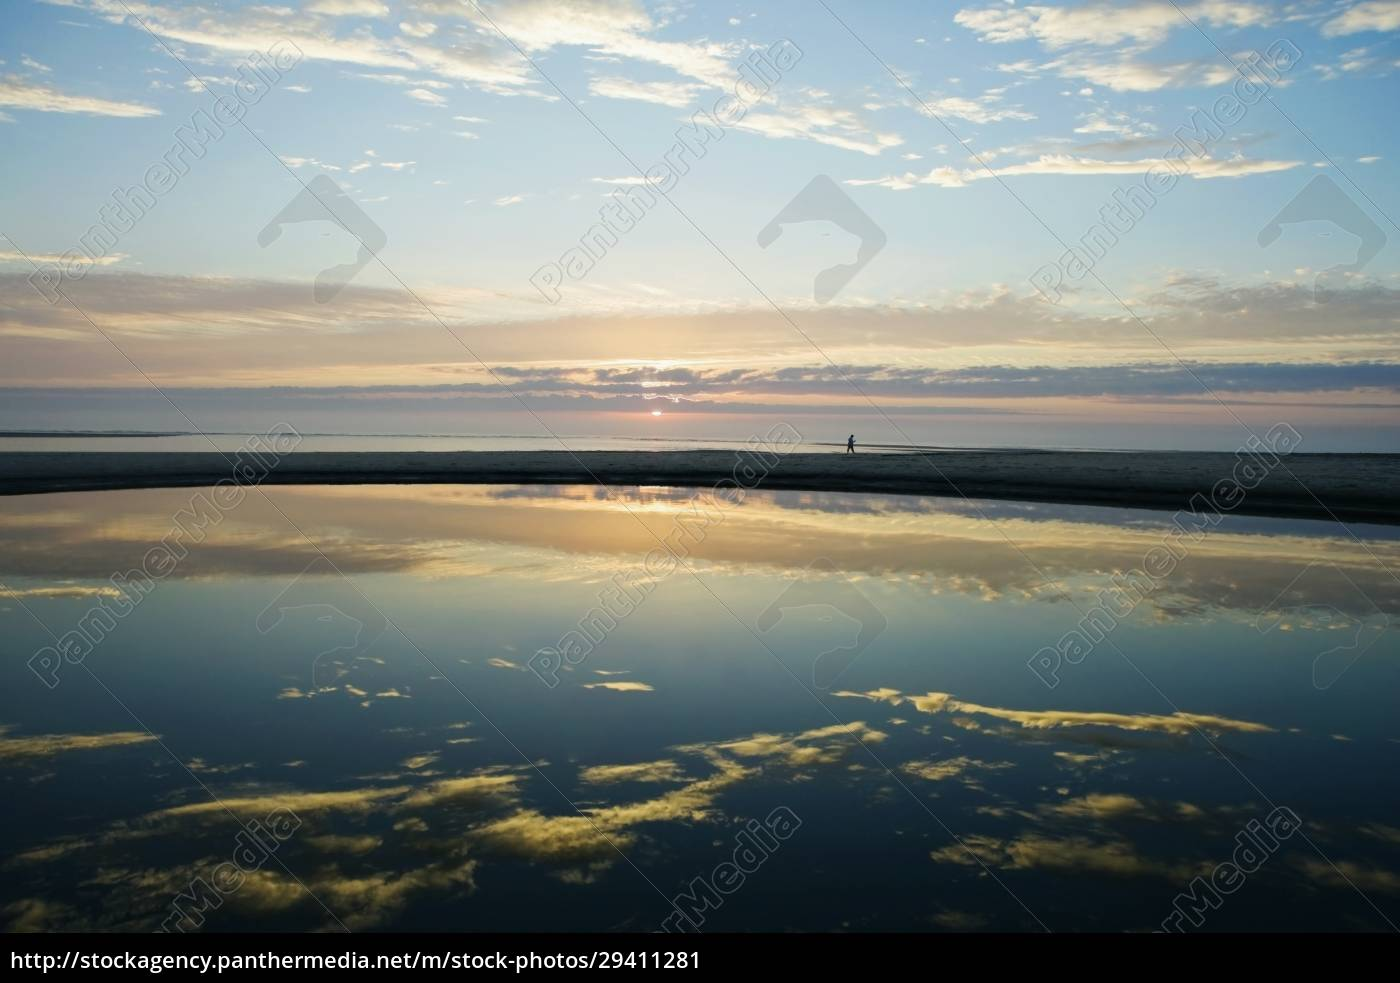 reflection, of, clouds, in, water - 29411281